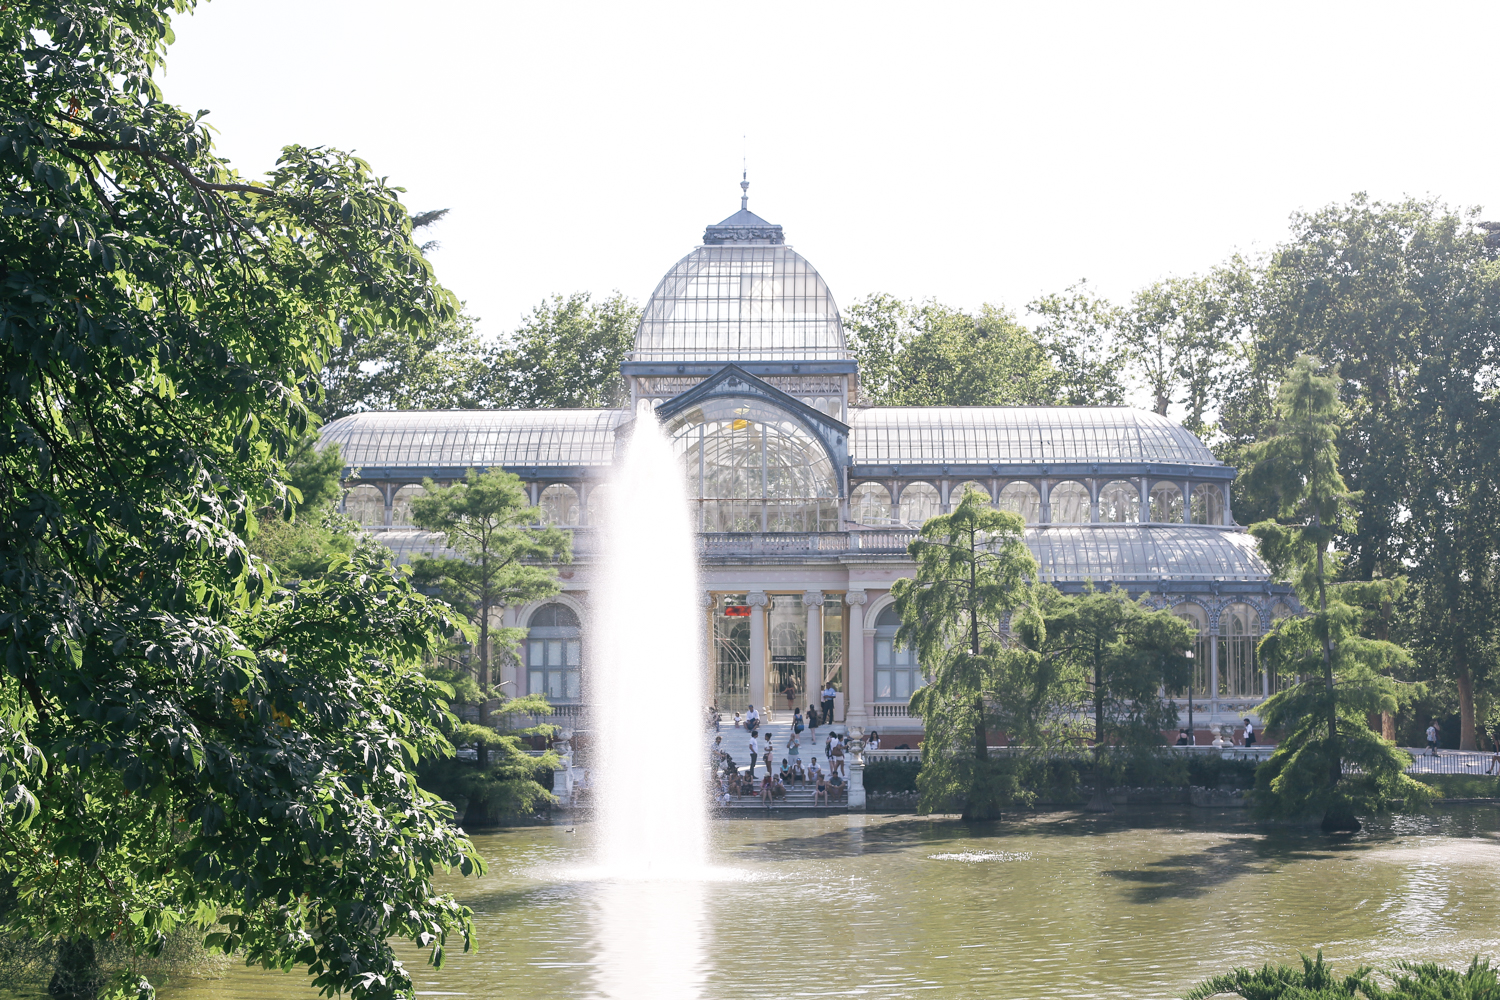 madrid palacio de cristal (8 of 8)